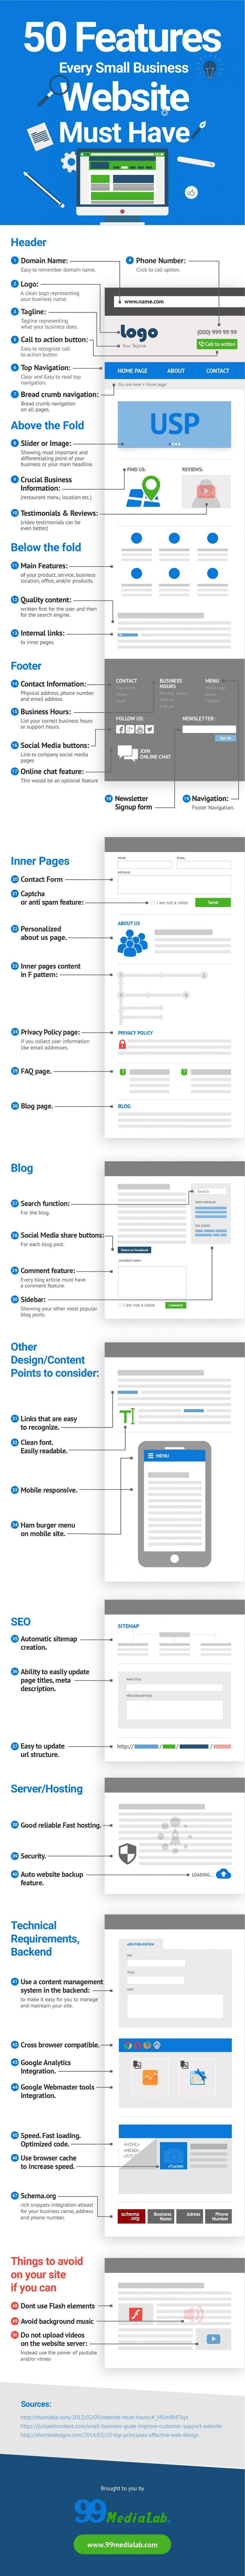 50 Features Every Small Business Website Should Have Infographic